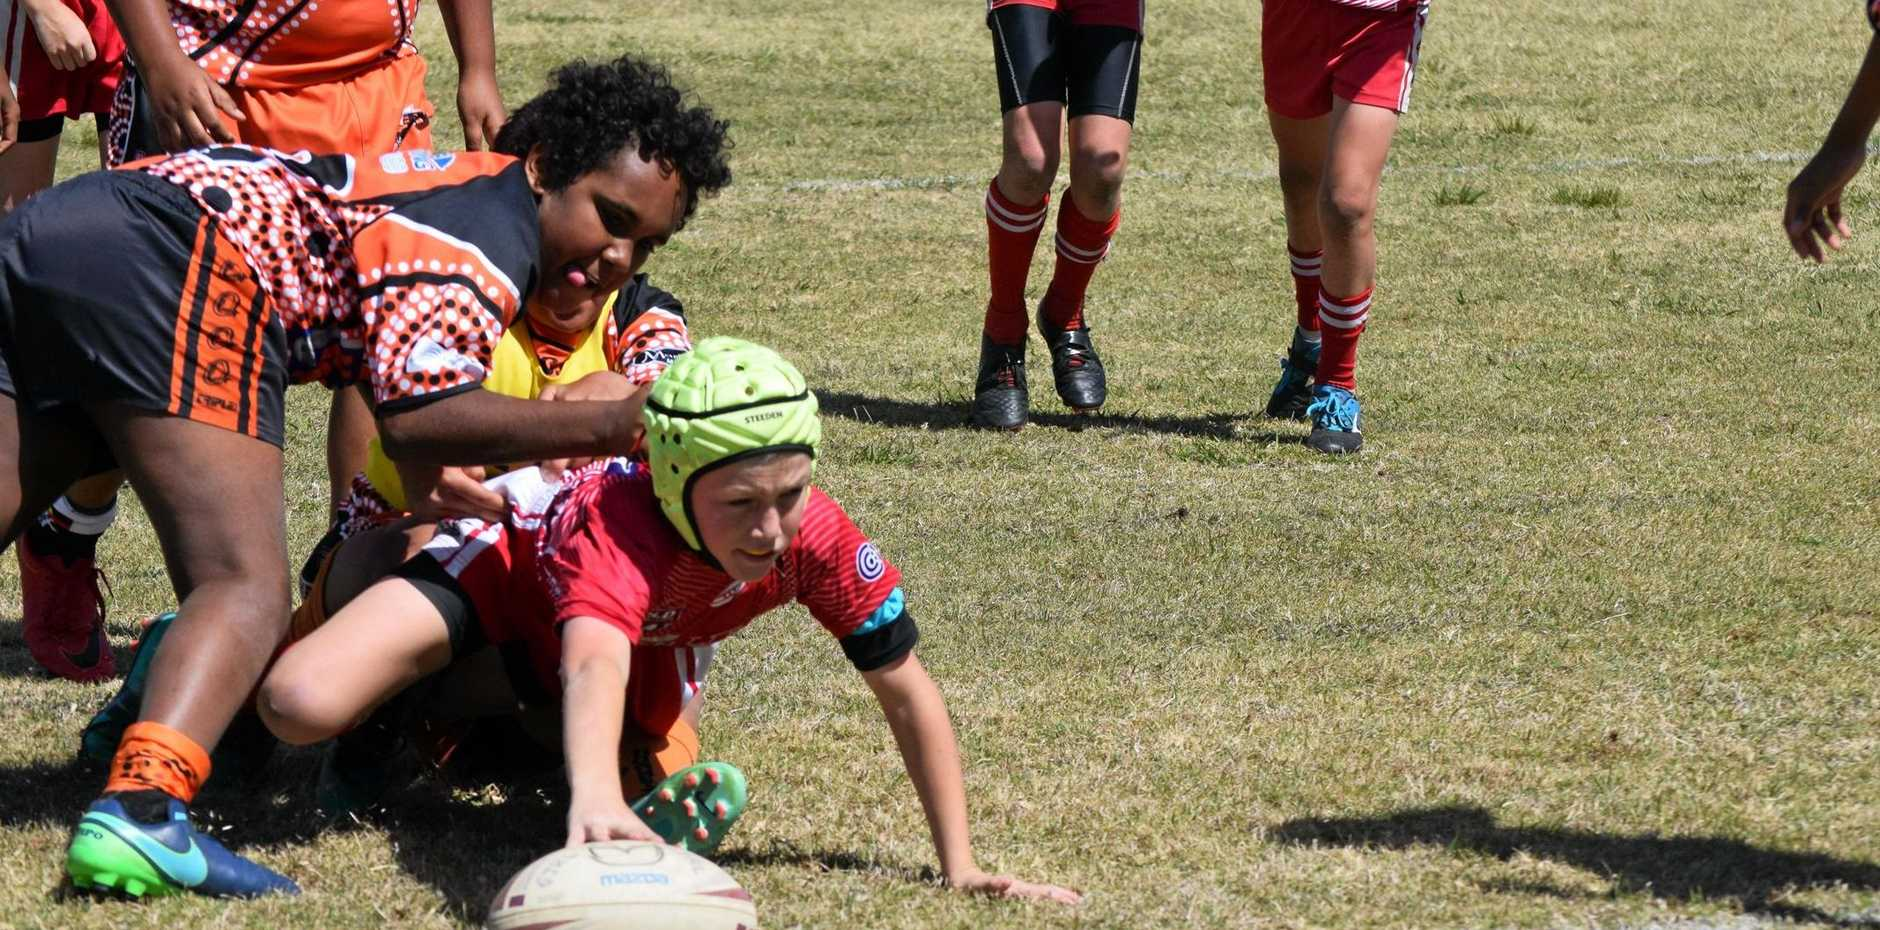 FOOTBALL FINALS: Photos from the preliminary final played between Cherbourg and Kingaroy in the under 12's division.